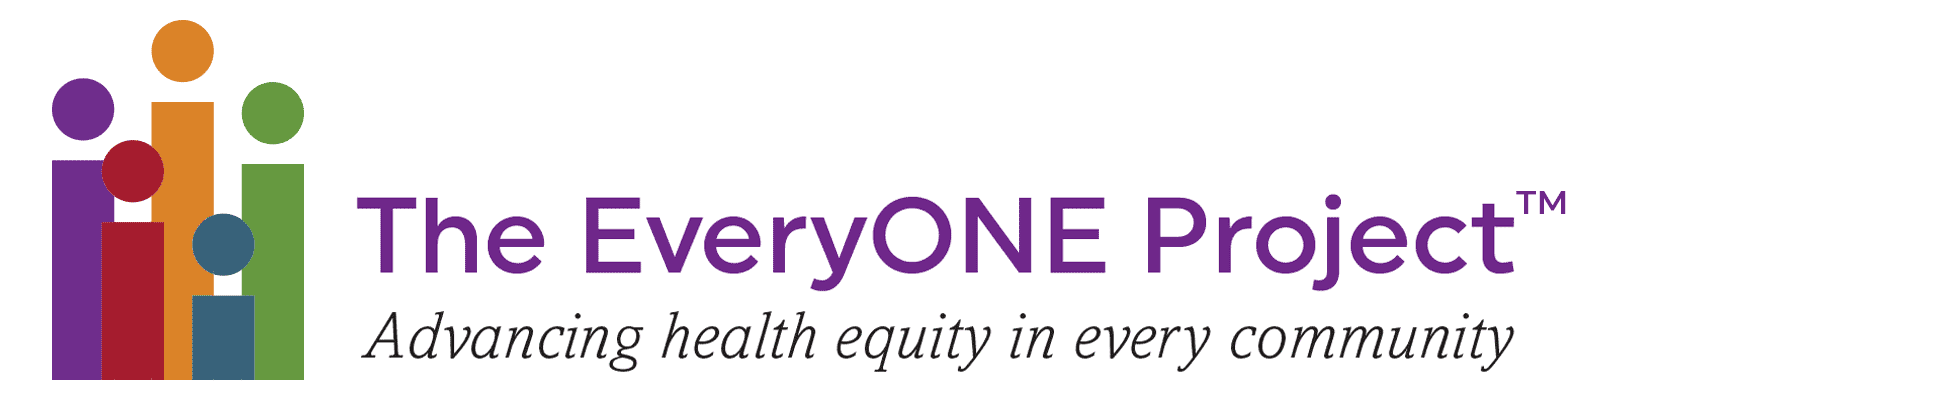 The Everyone Project - Advancing health equity in every community